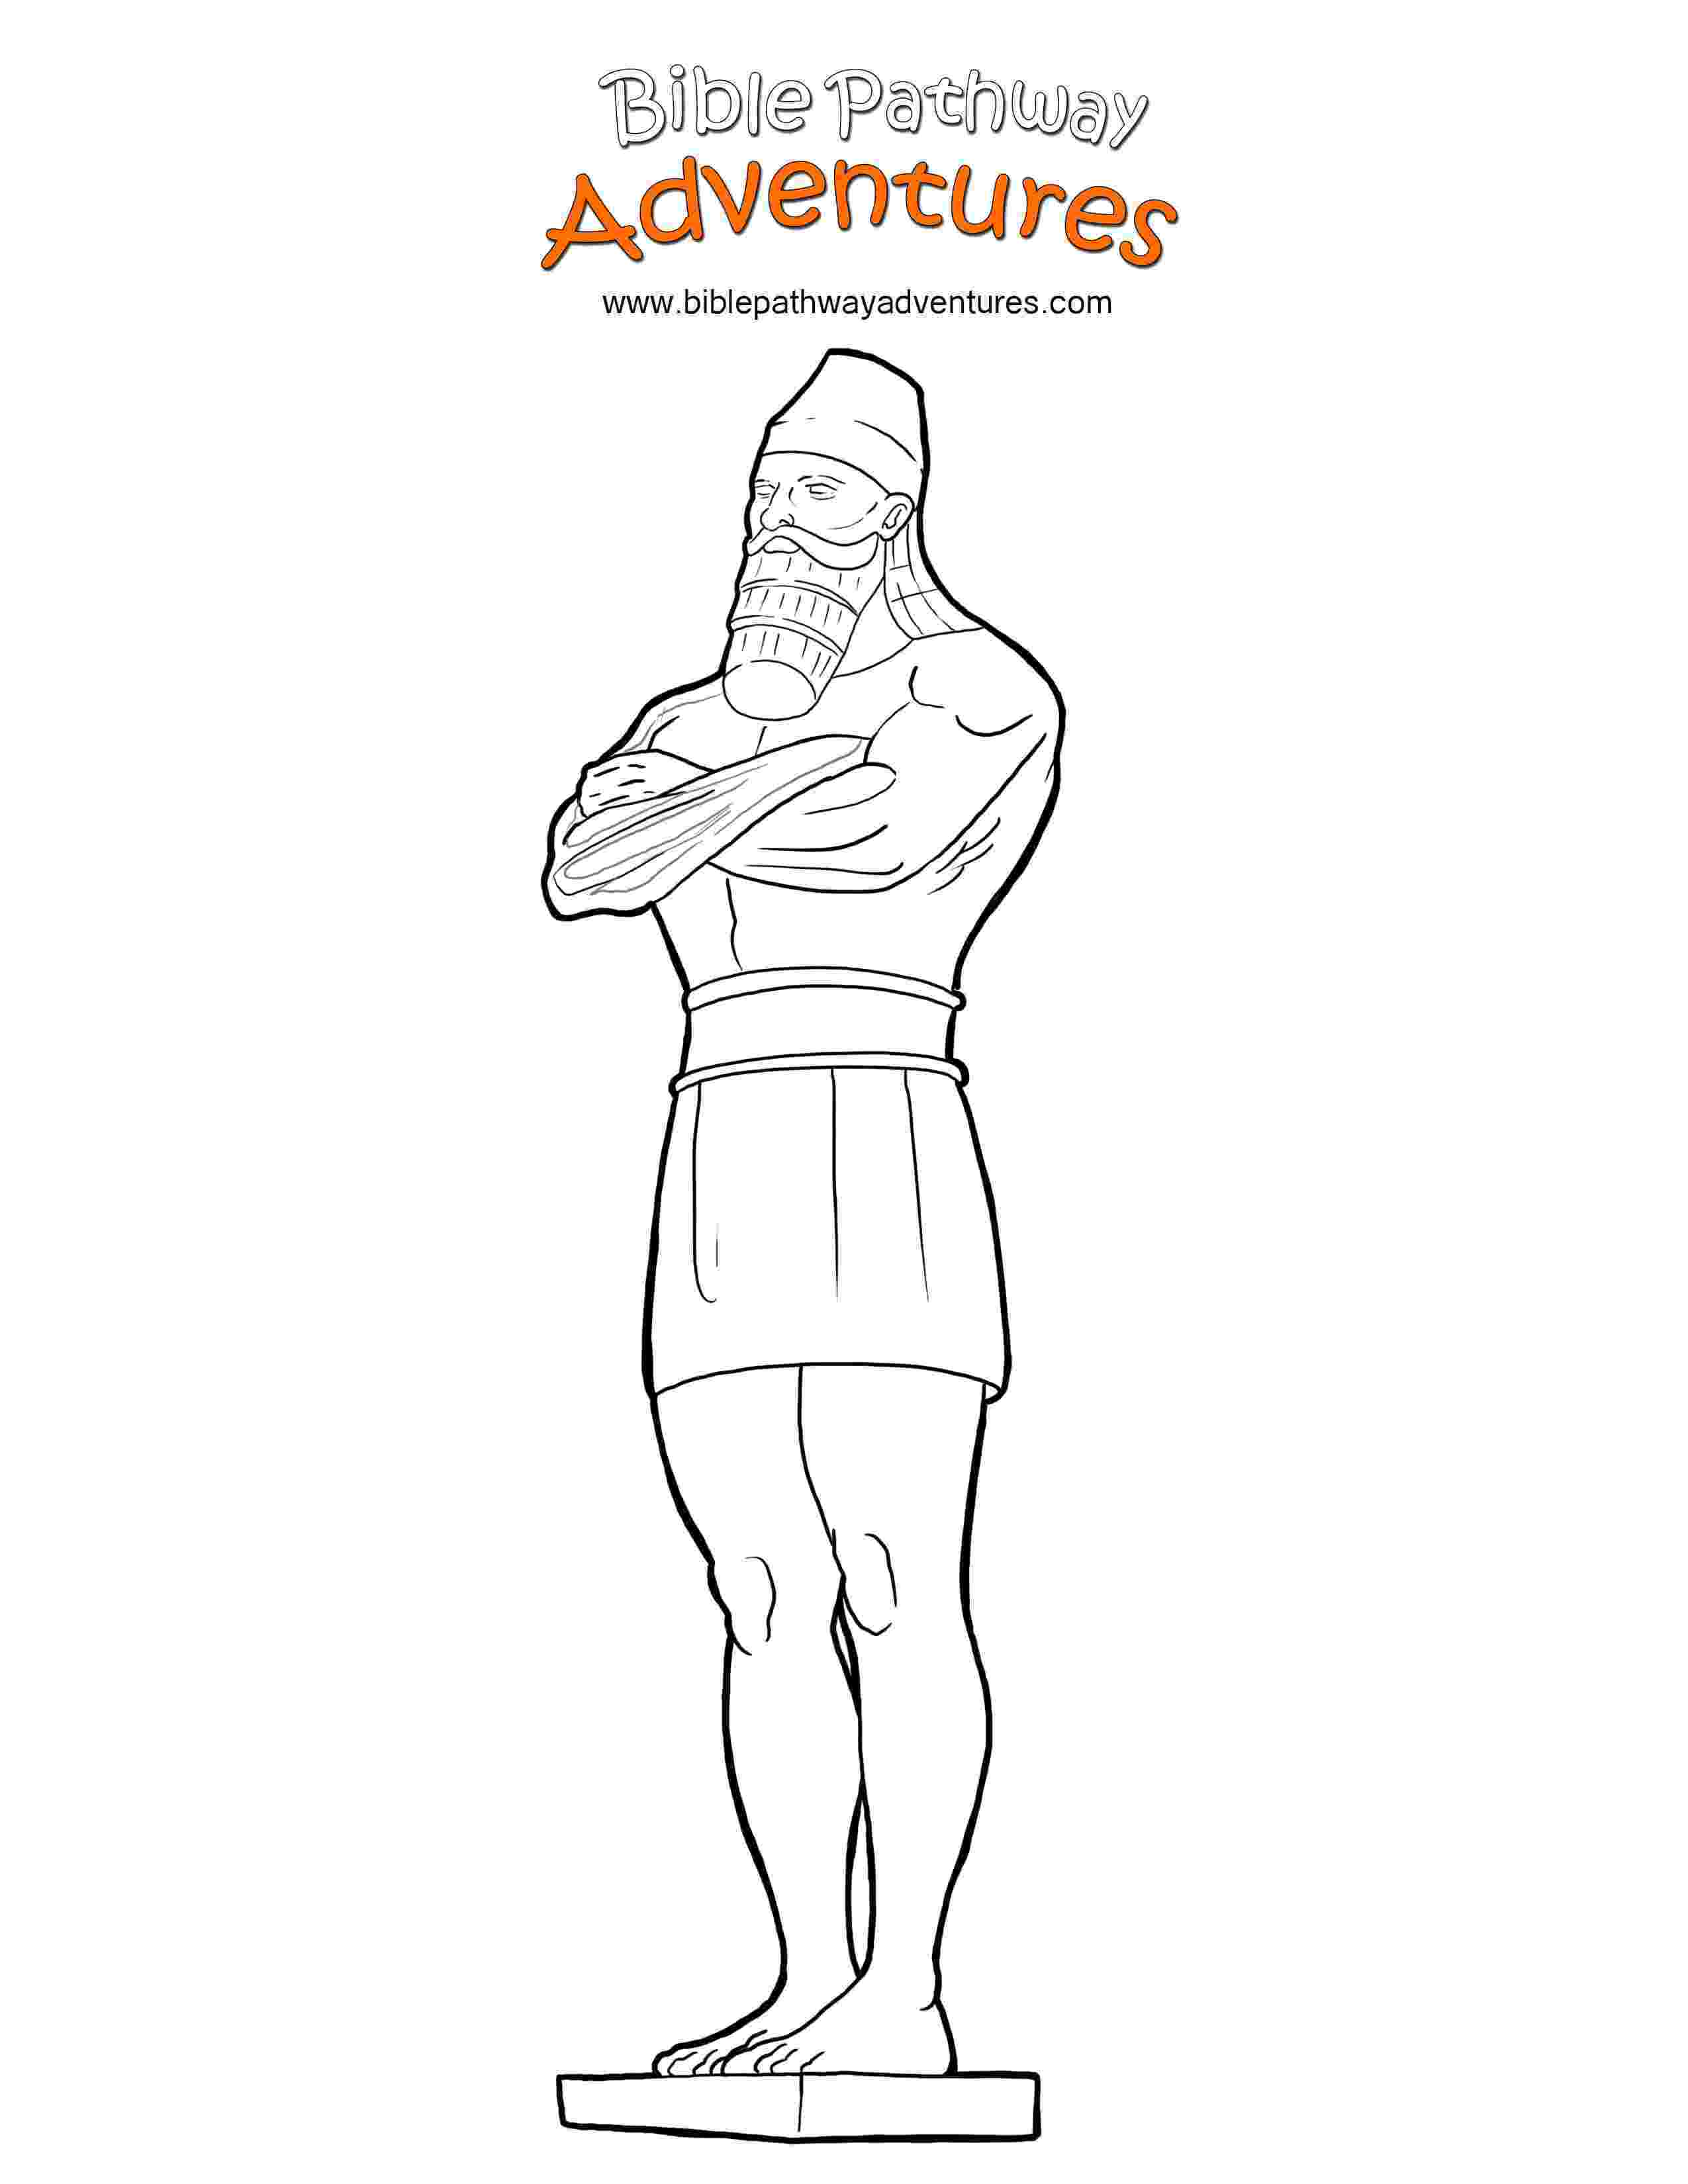 nebuchadnezzar coloring page my children39s curriculum daniel interprets nebuchadnezzar nebuchadnezzar page coloring